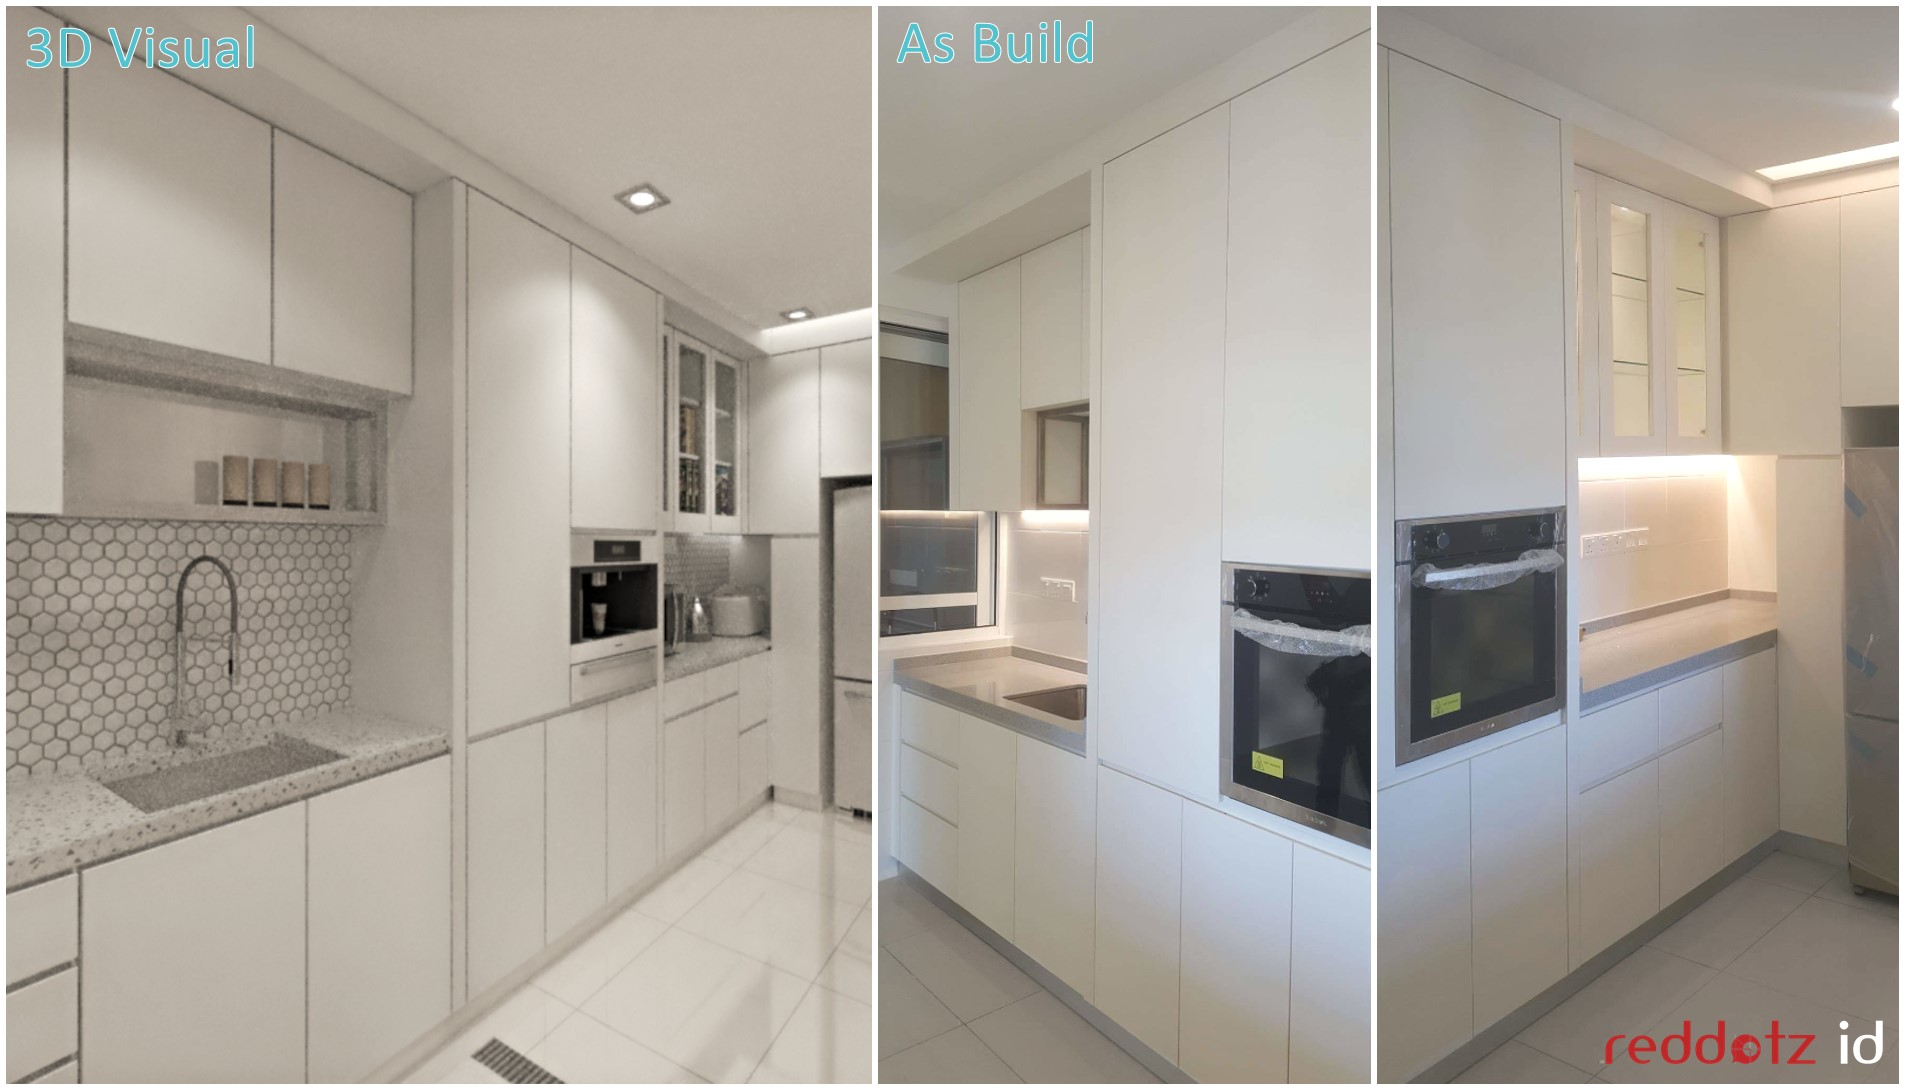 Malaysia Kitchen Design Before After 02